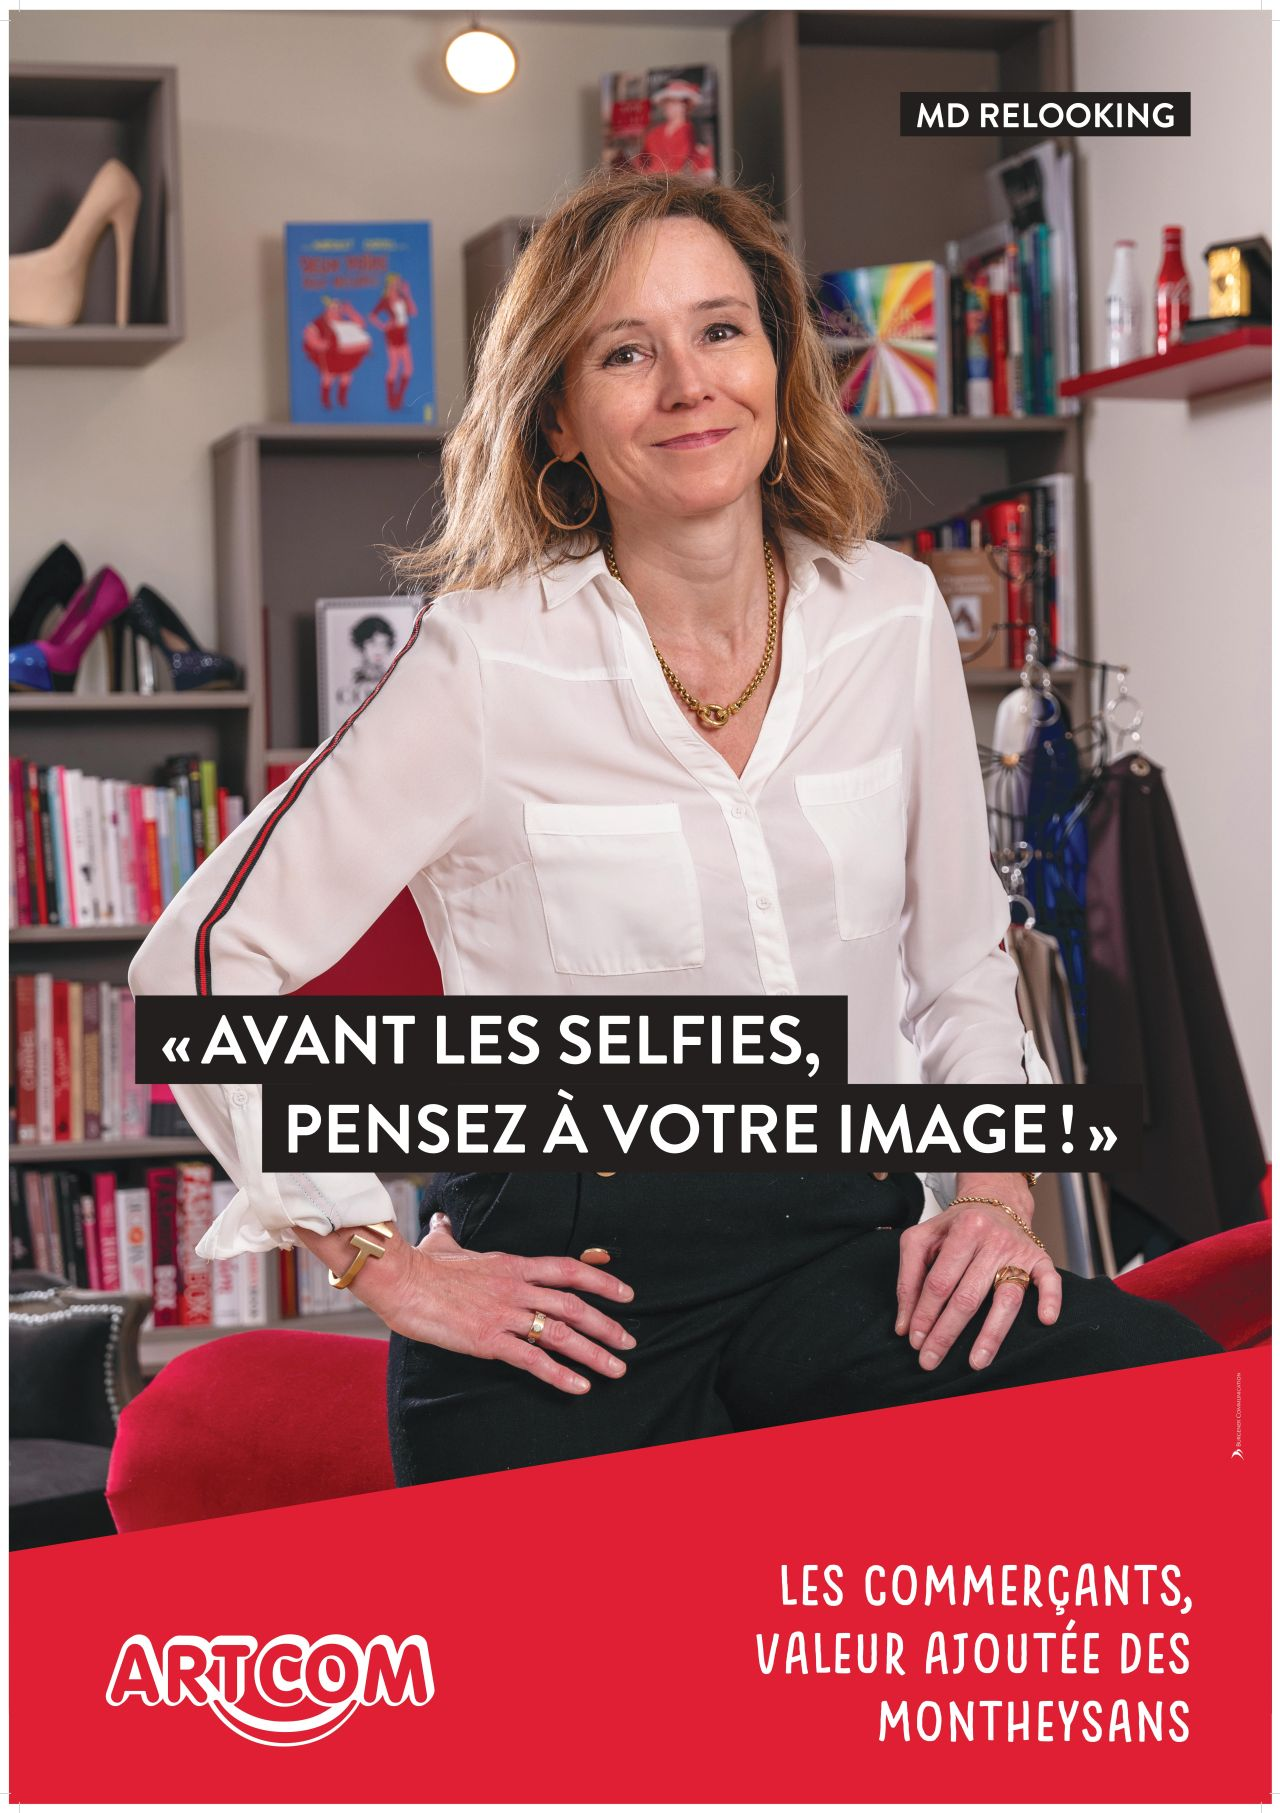 Affiche MD Relooking